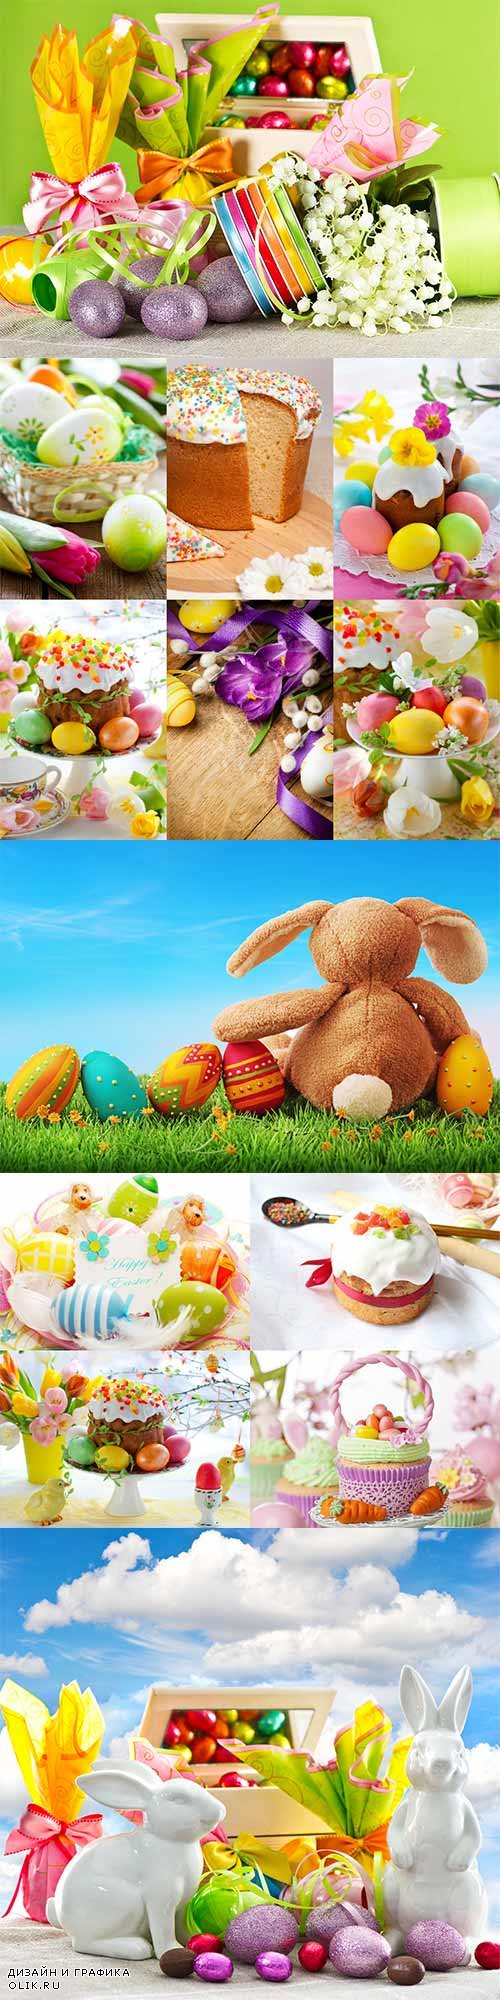 Happy Easter - 4